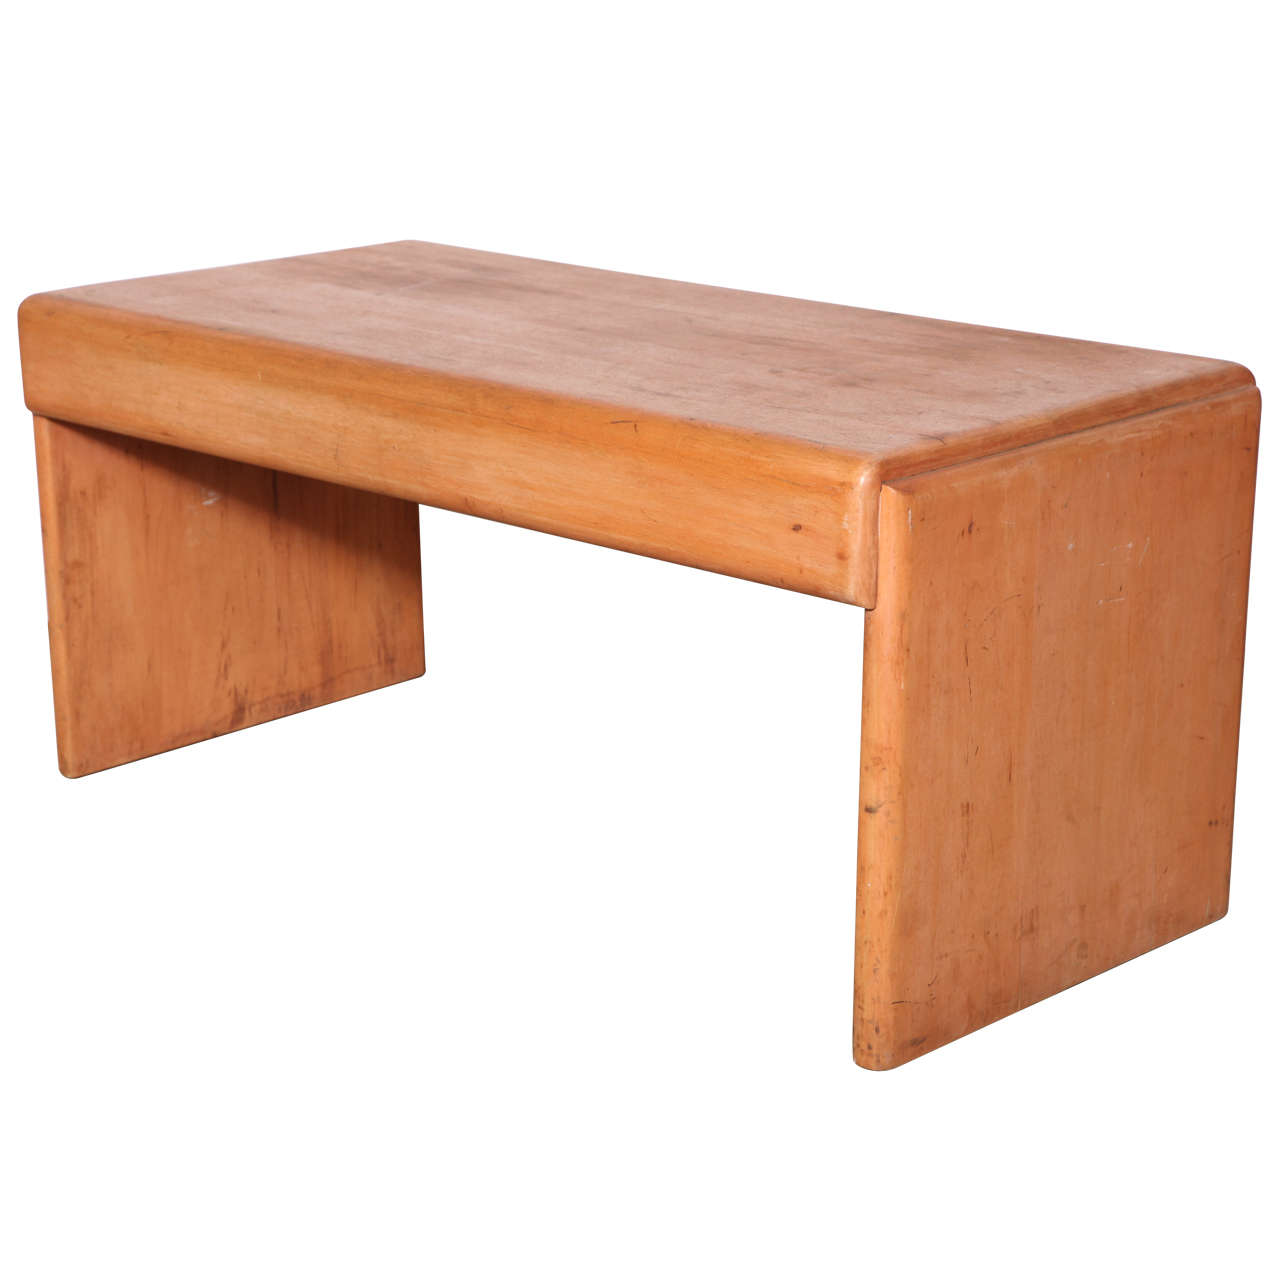 "American Modern Furniture: Rare Russel Wright ""American Modern"" Maple Bench At 1stdibs"